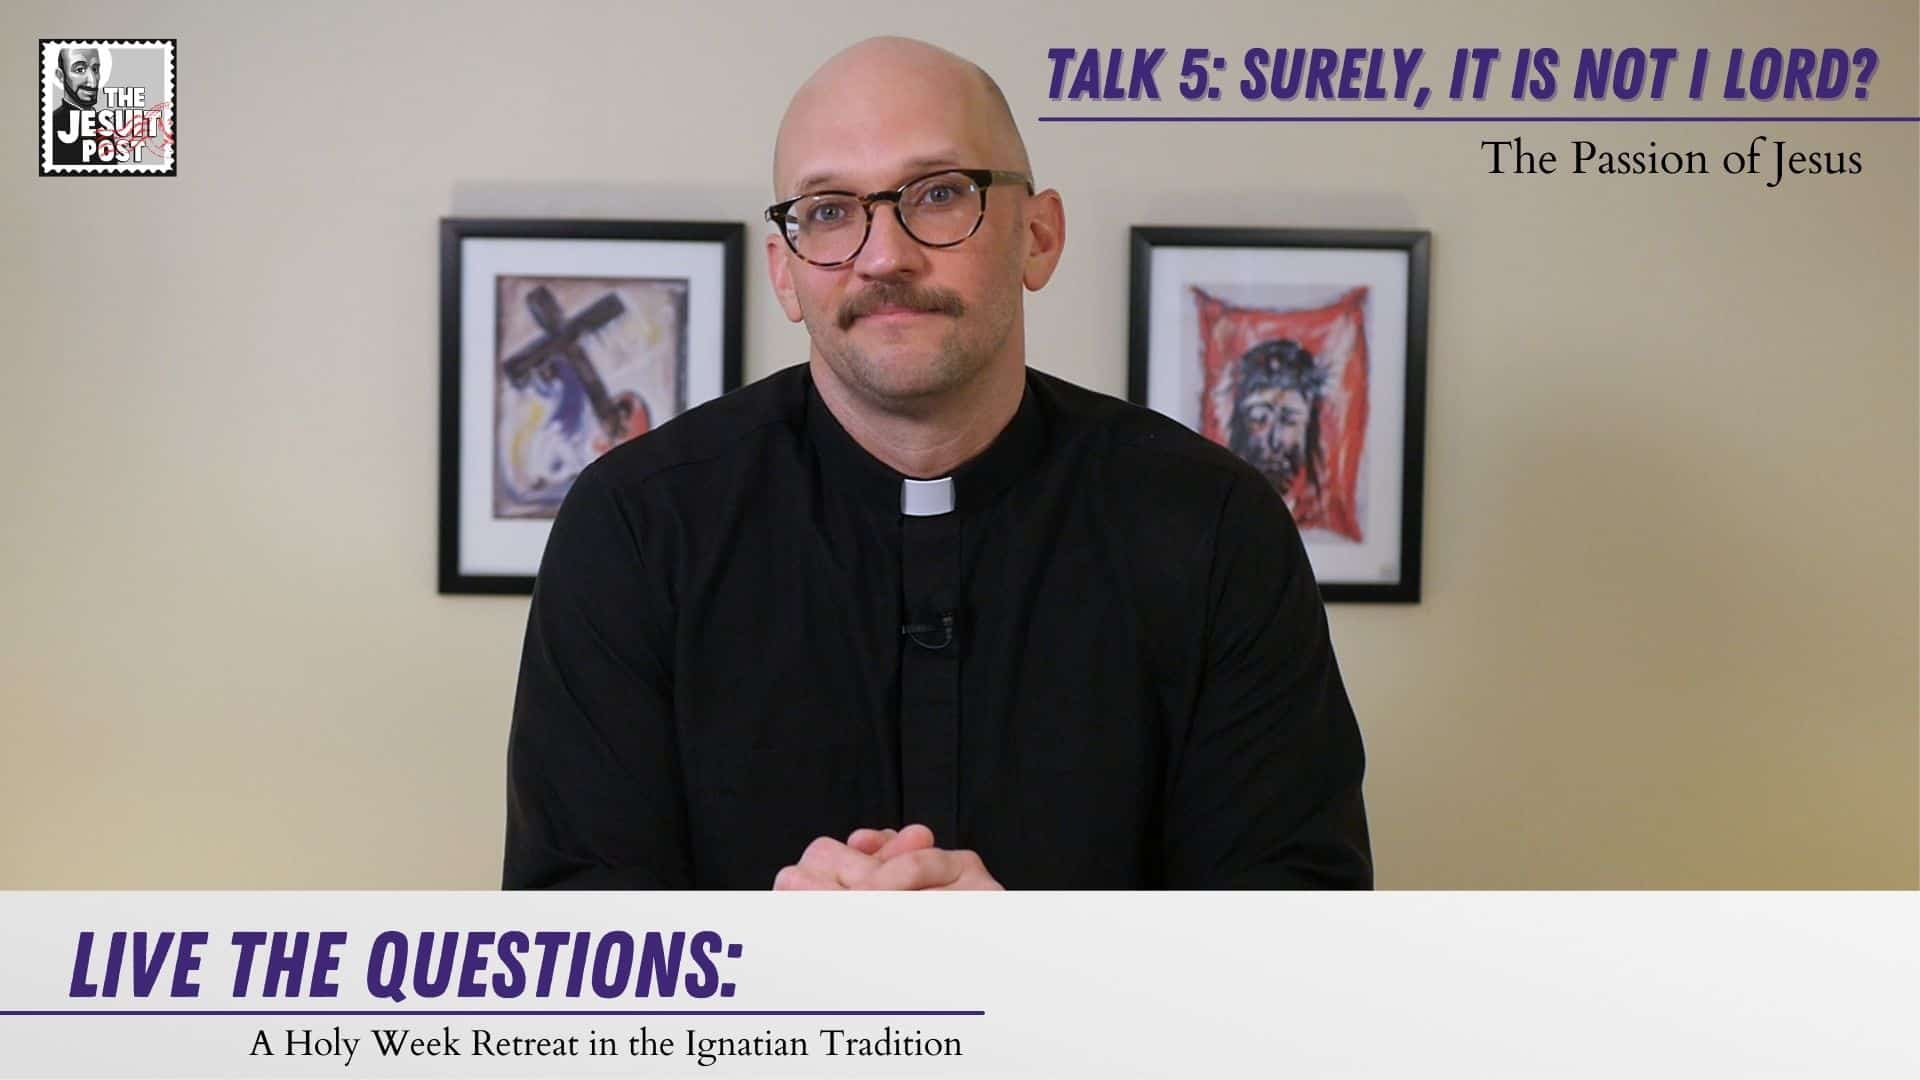 Talk 5: Surely, it is not I, Lord? The Passion of Jesus   Life the Questions: A Holy Week Retreat